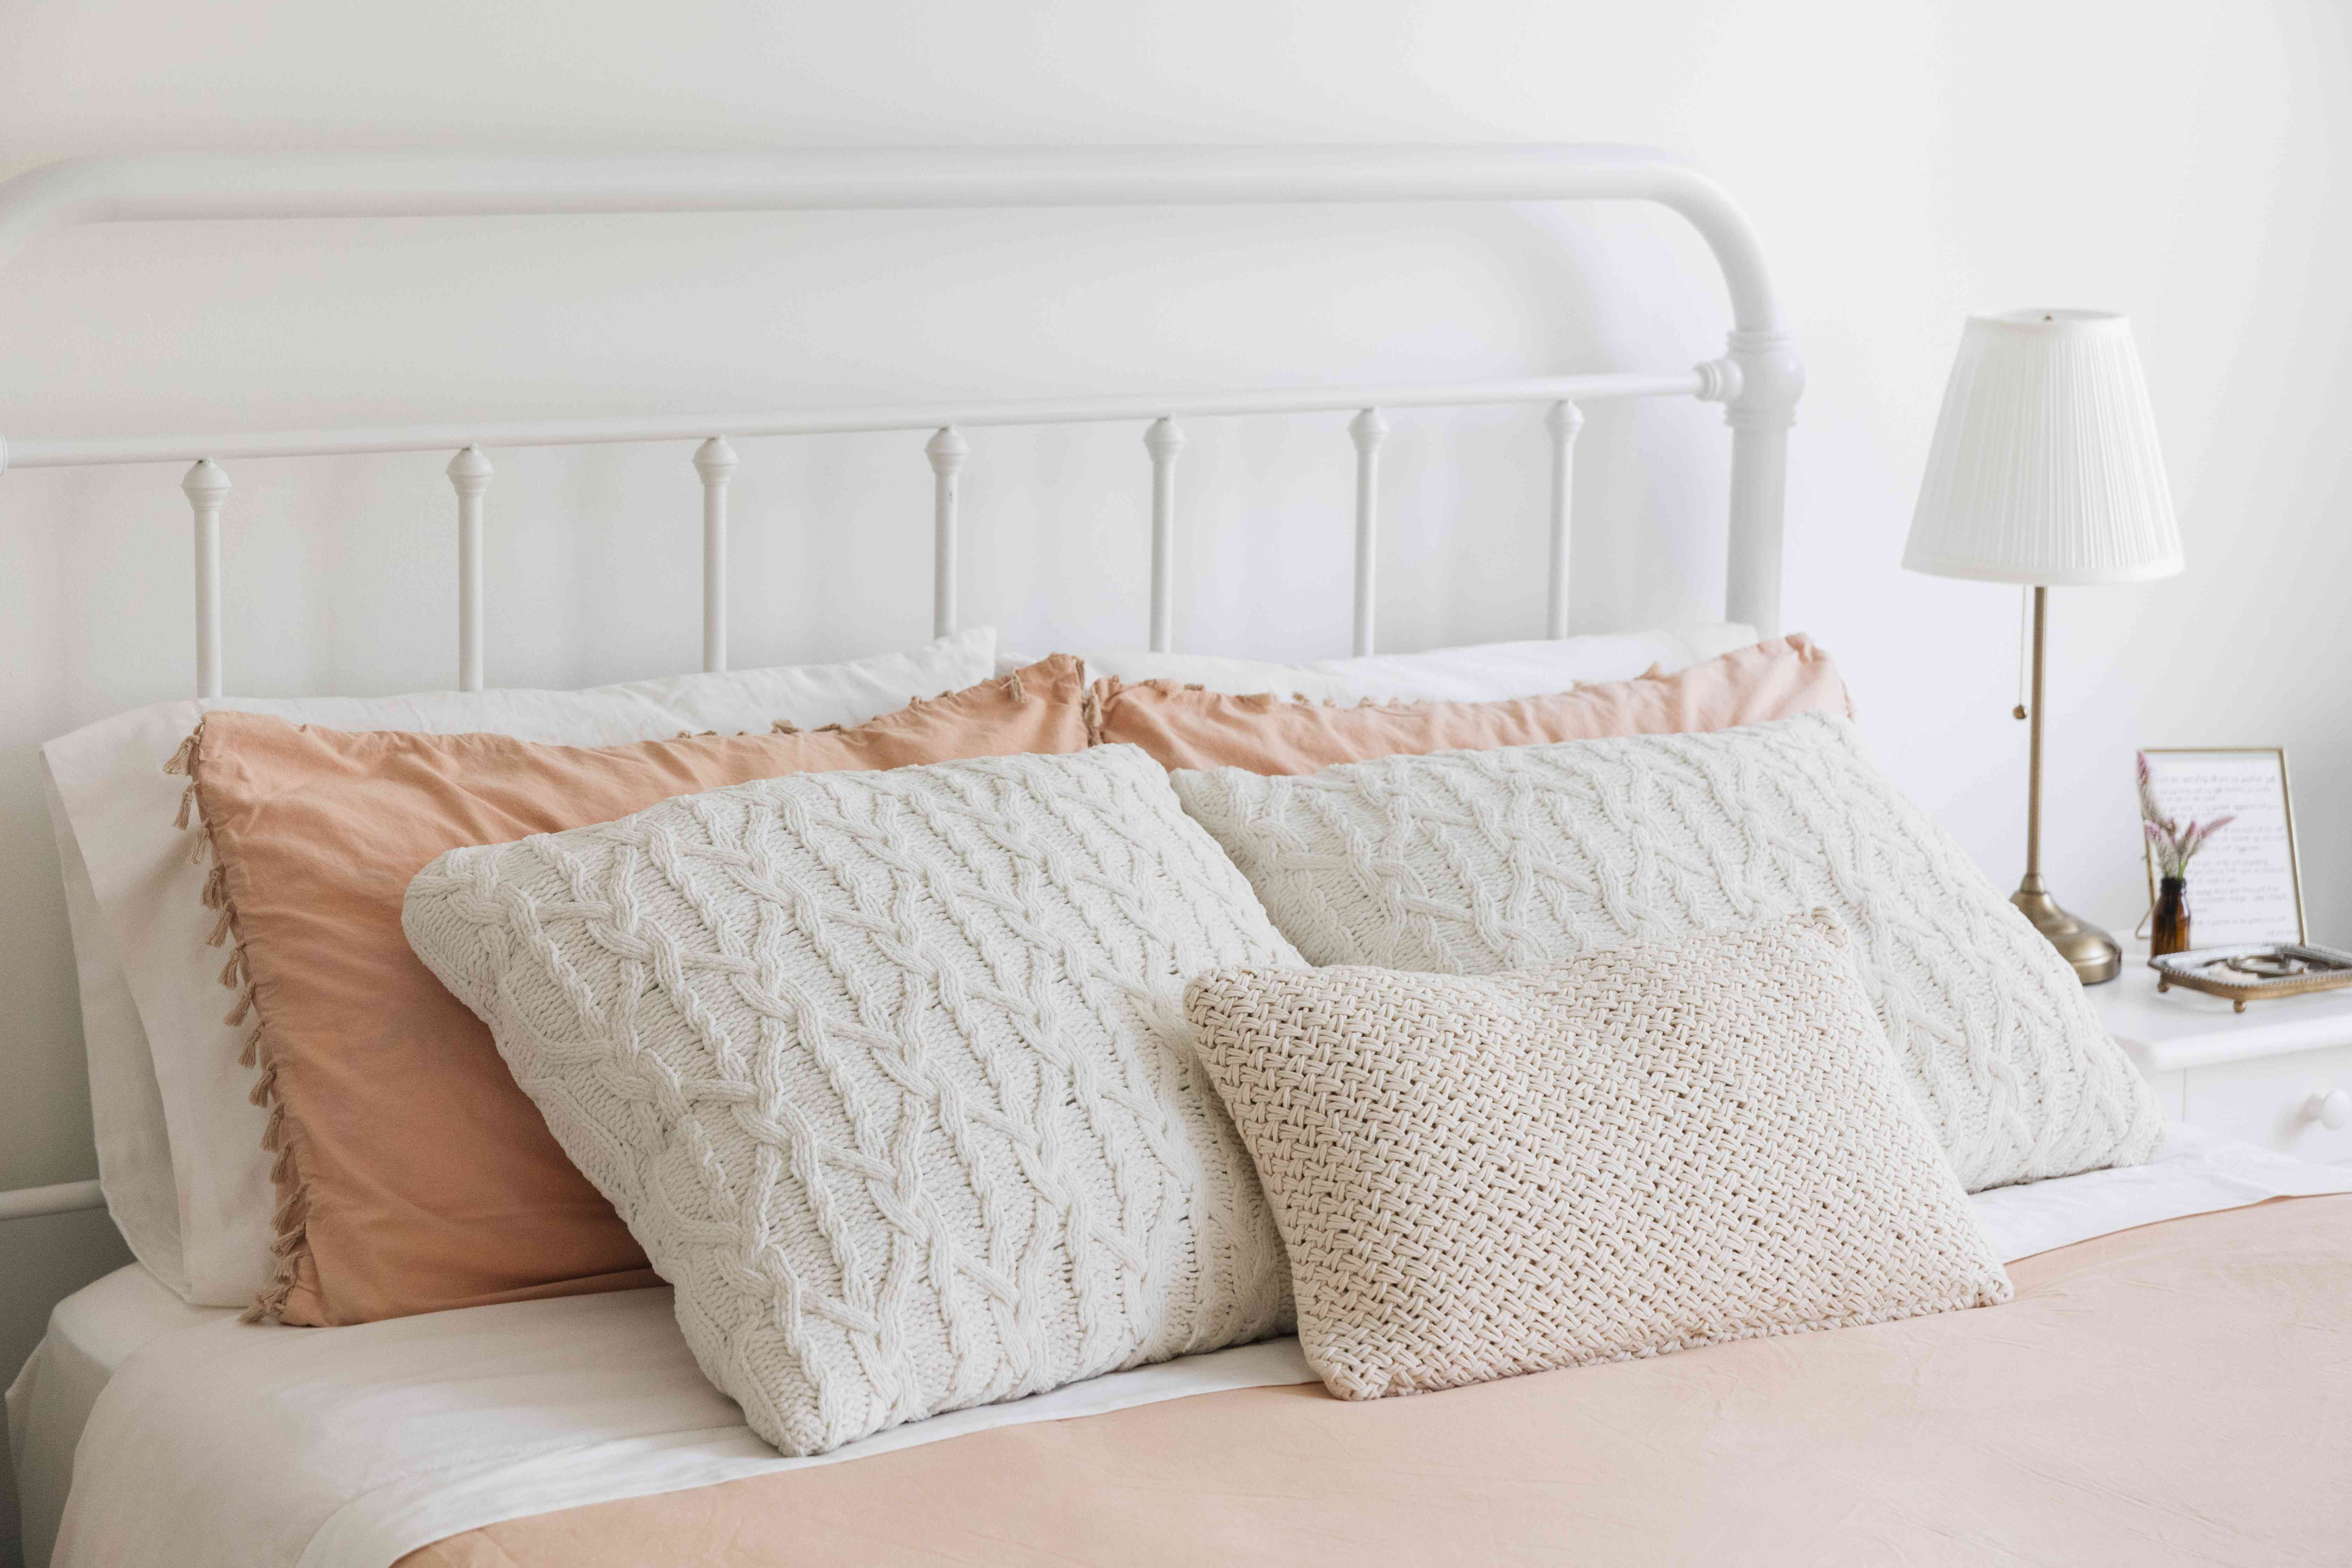 throw pillows arranged on a bed